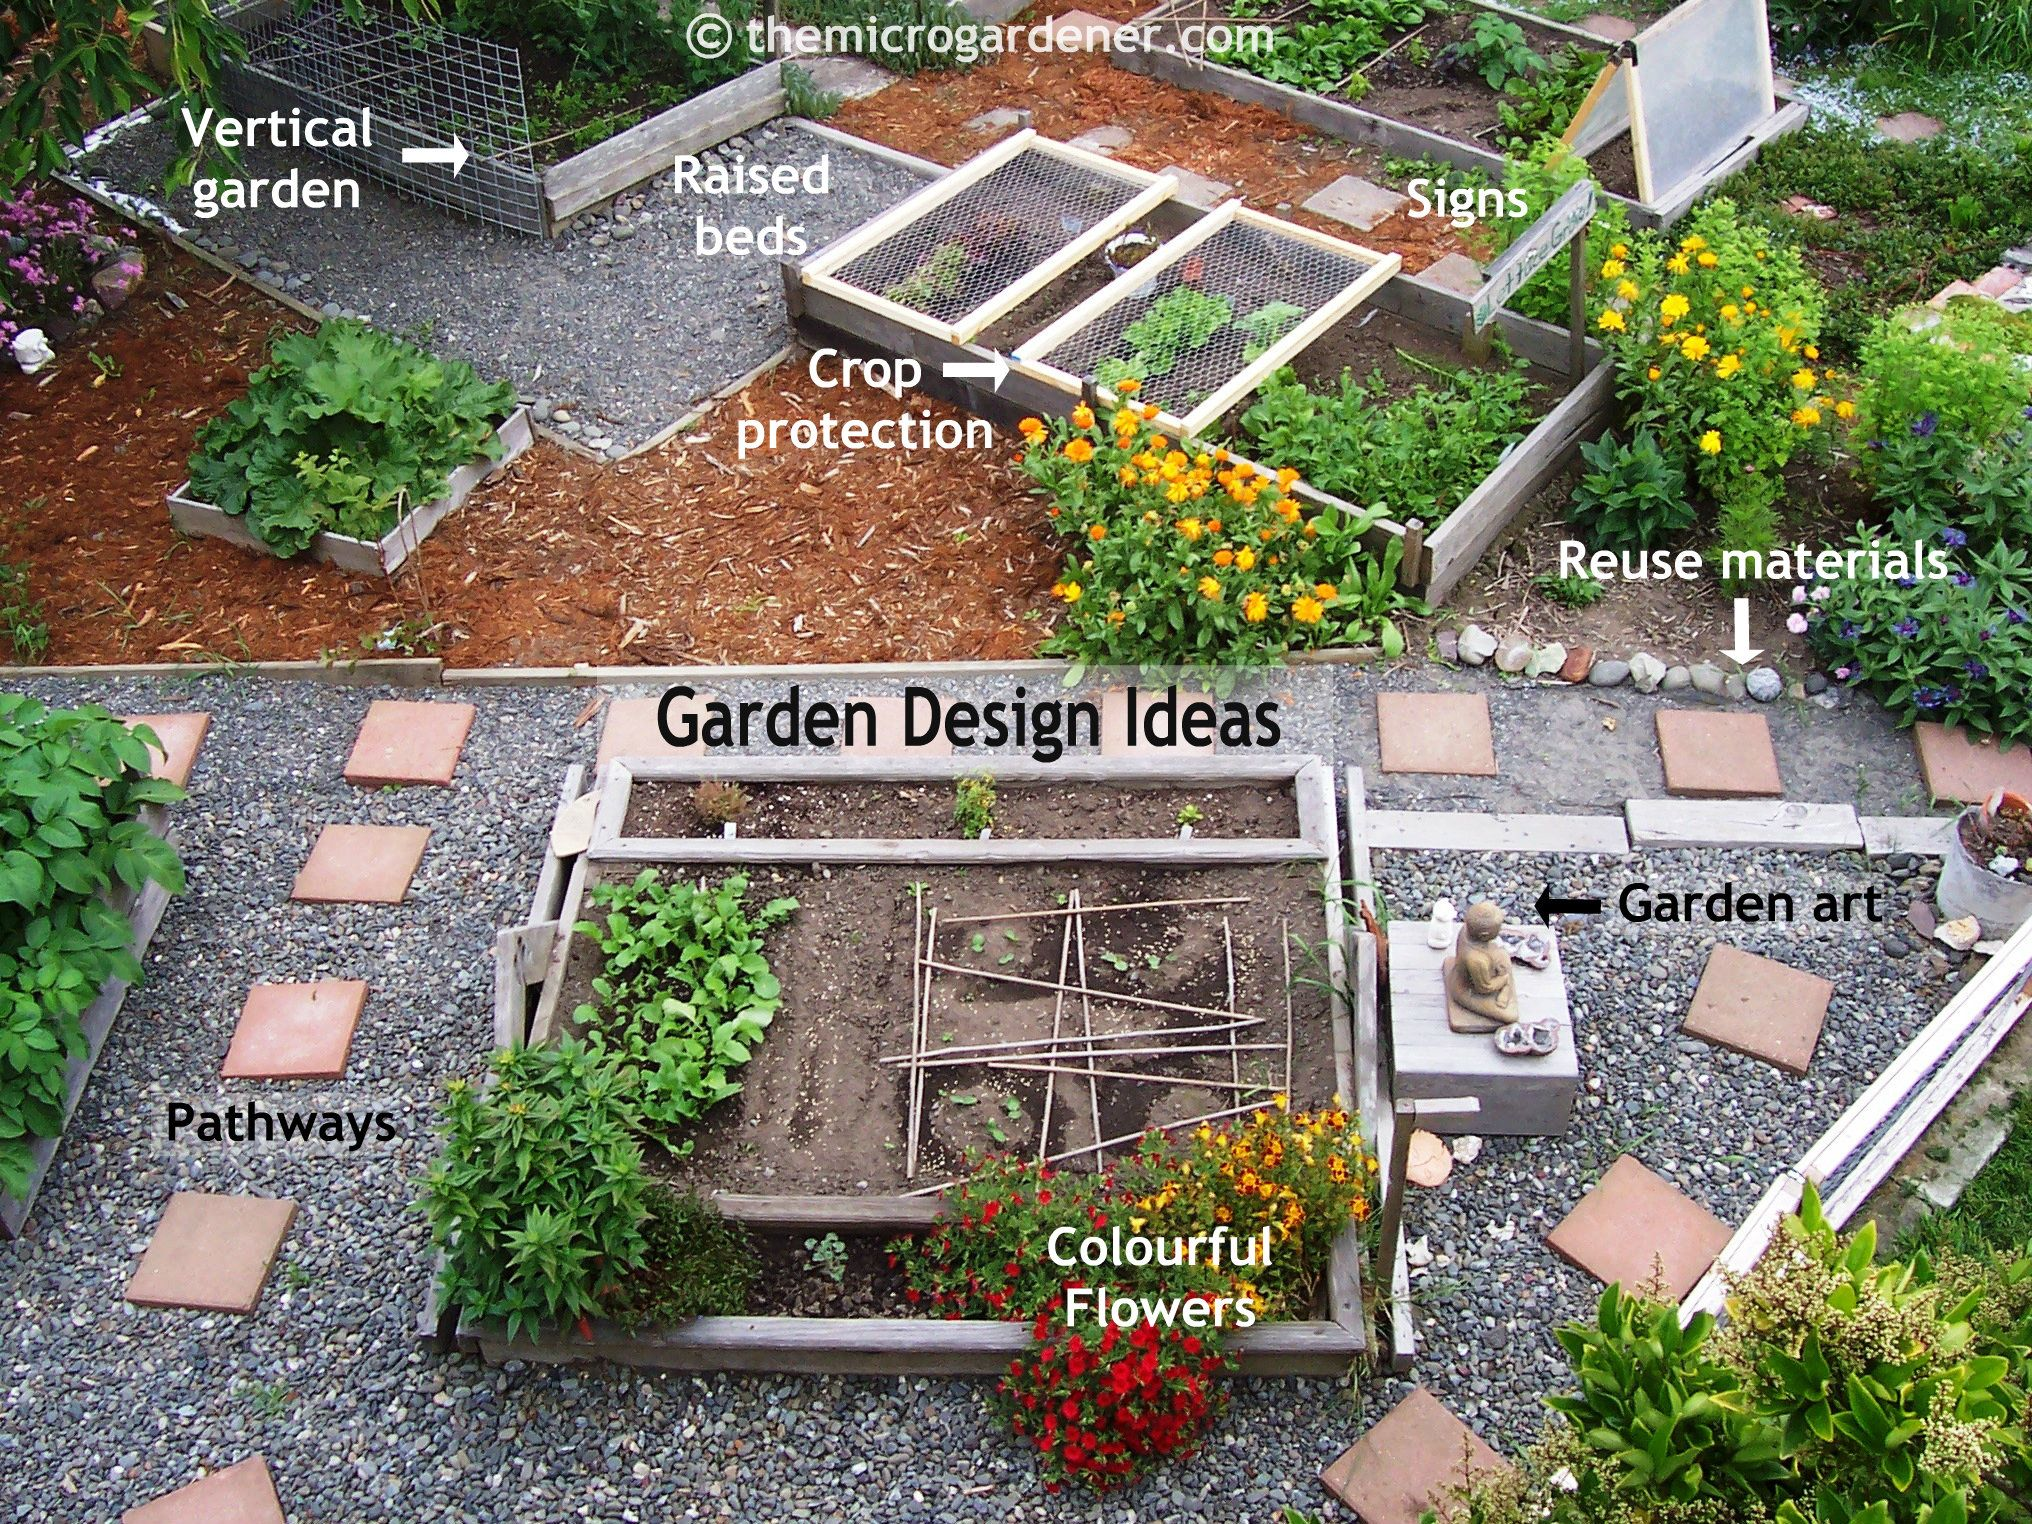 Small garden design ideas on pinterest vertical gardens for Garden design pinterest